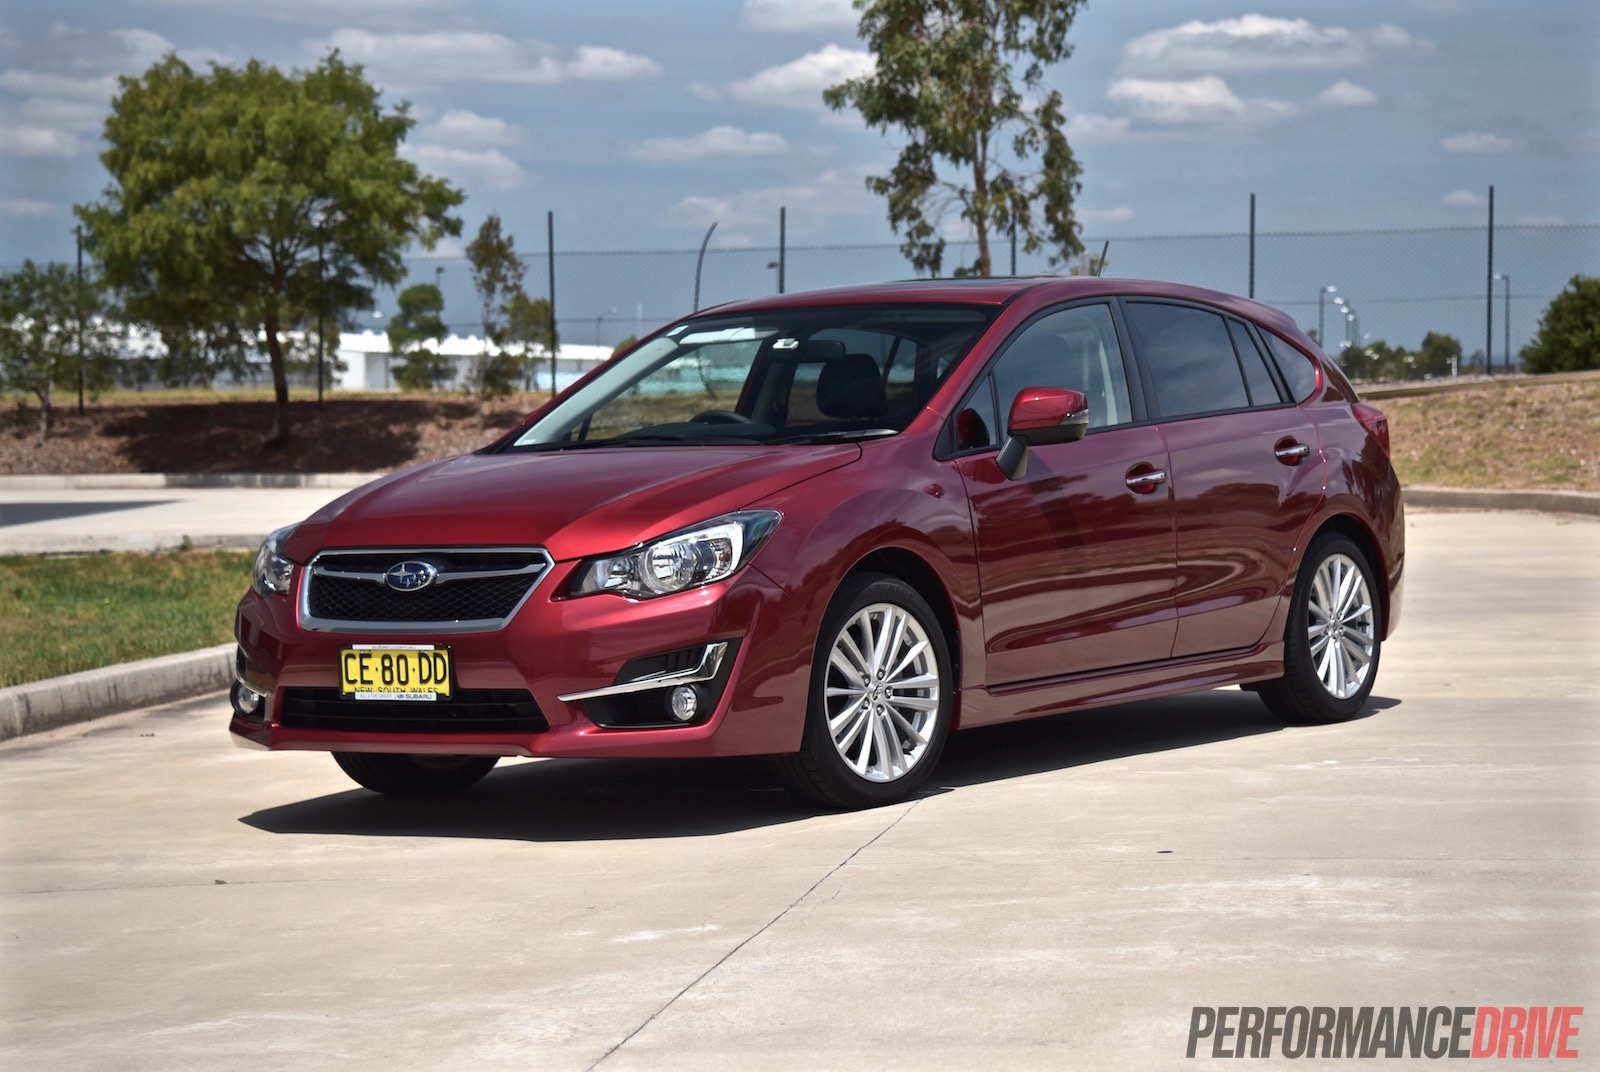 2015 Subaru Impreza 2 0i S Review Video Performancedrive